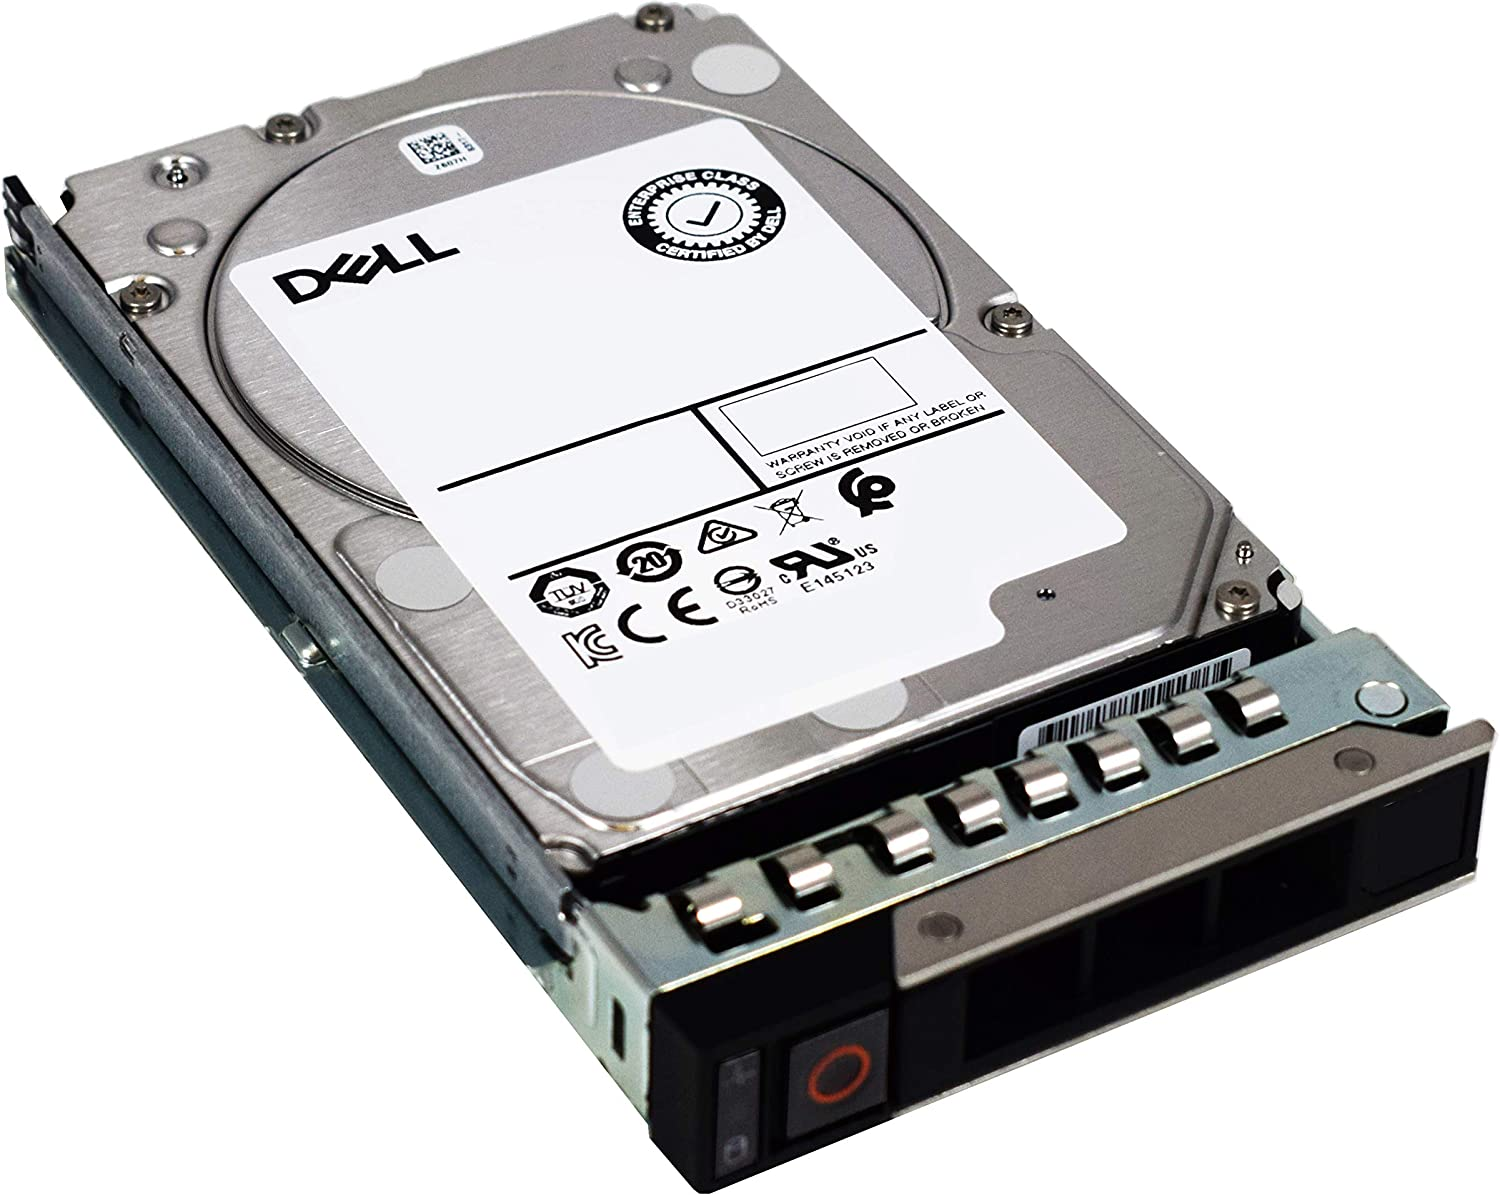 "Dell 401-ABHQ 2.4TB 10K SAS 12G 2.5"" PE-Series 14G PowerEdge Servers"